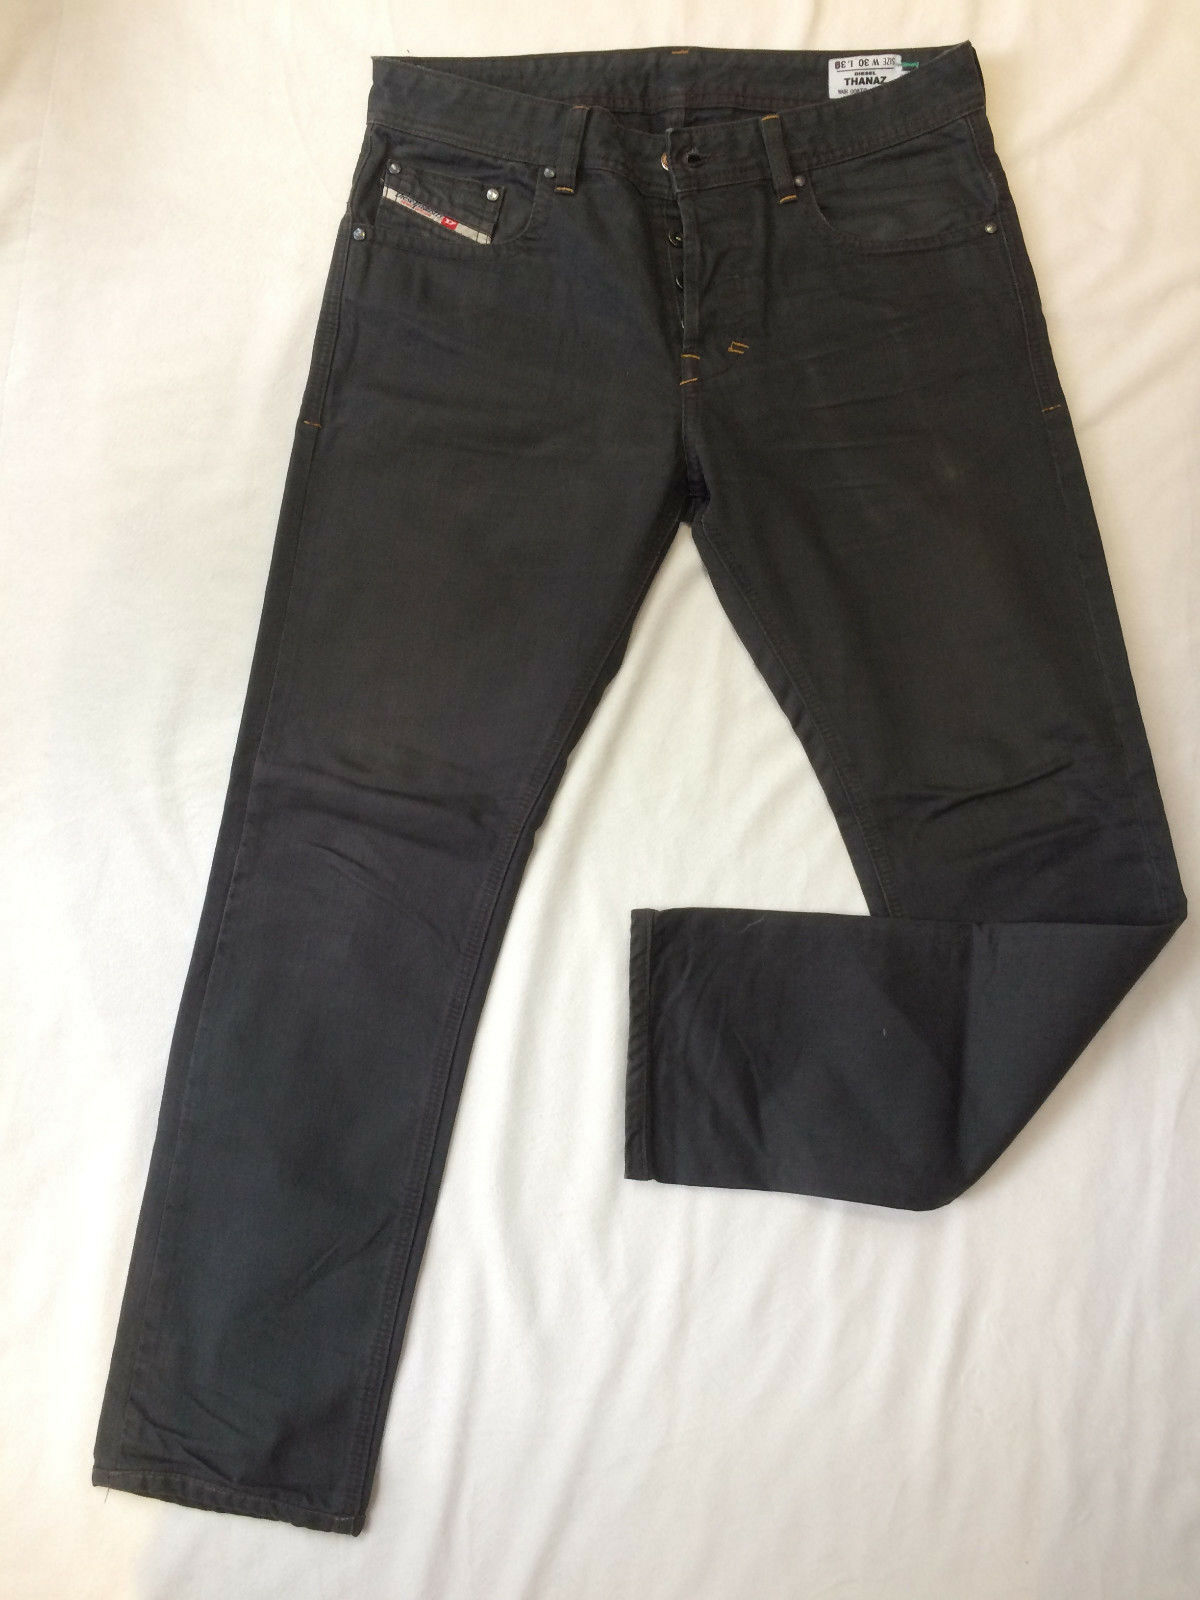 9011813e OUTSTANDING DIESEL THANAZ WASH 008TS TAPERED SLIM FIT BROWN JEANS SIZE 30  L30